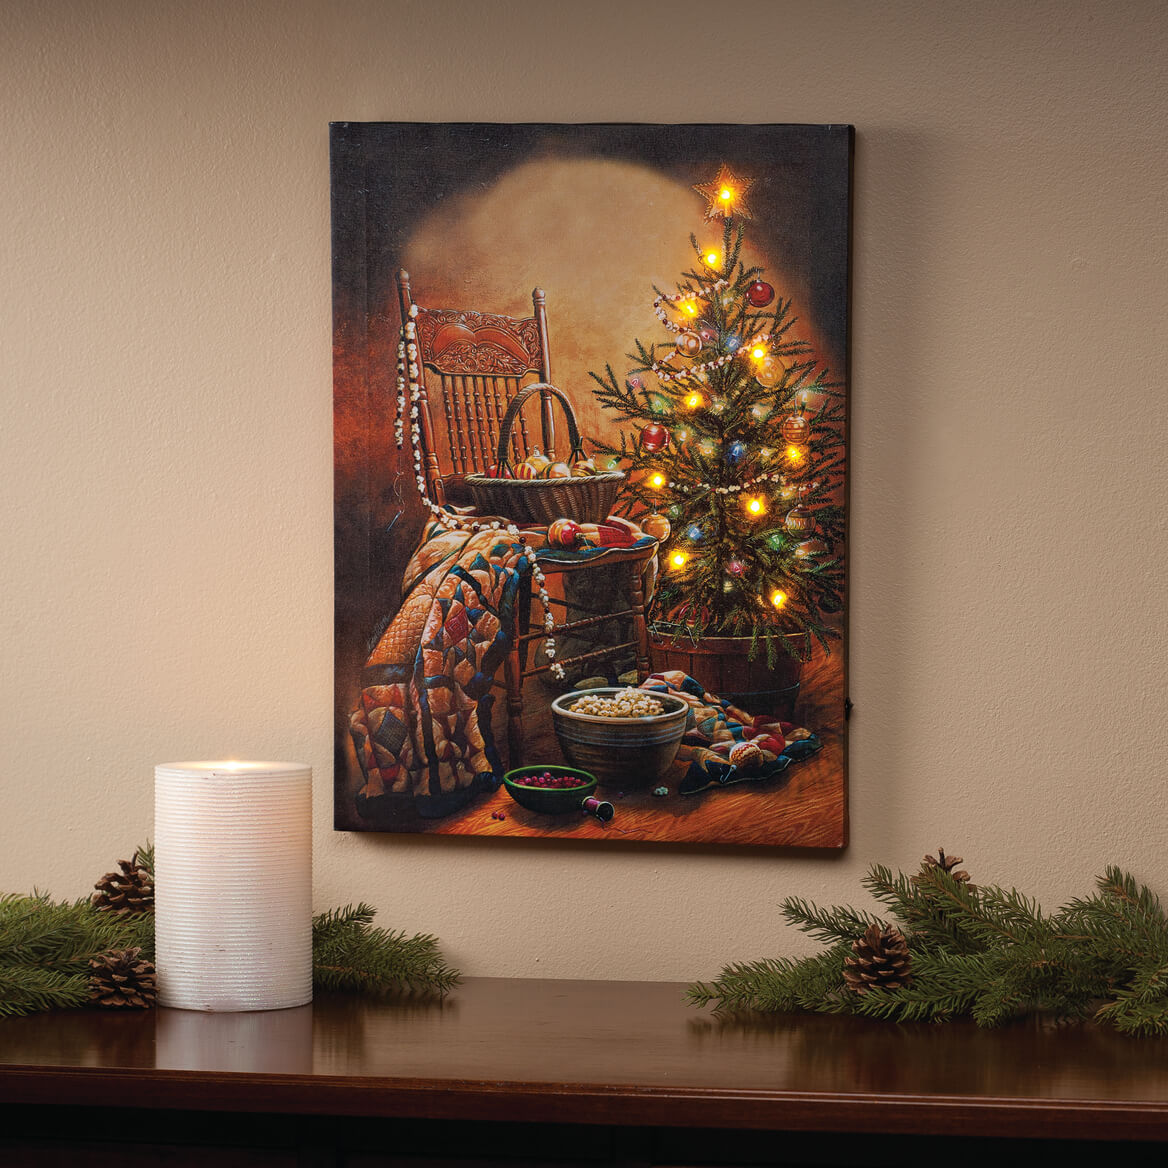 doug knutson lighted country christmas canvas by northwoods 360897 - Peanuts Indoor Christmas Decorations